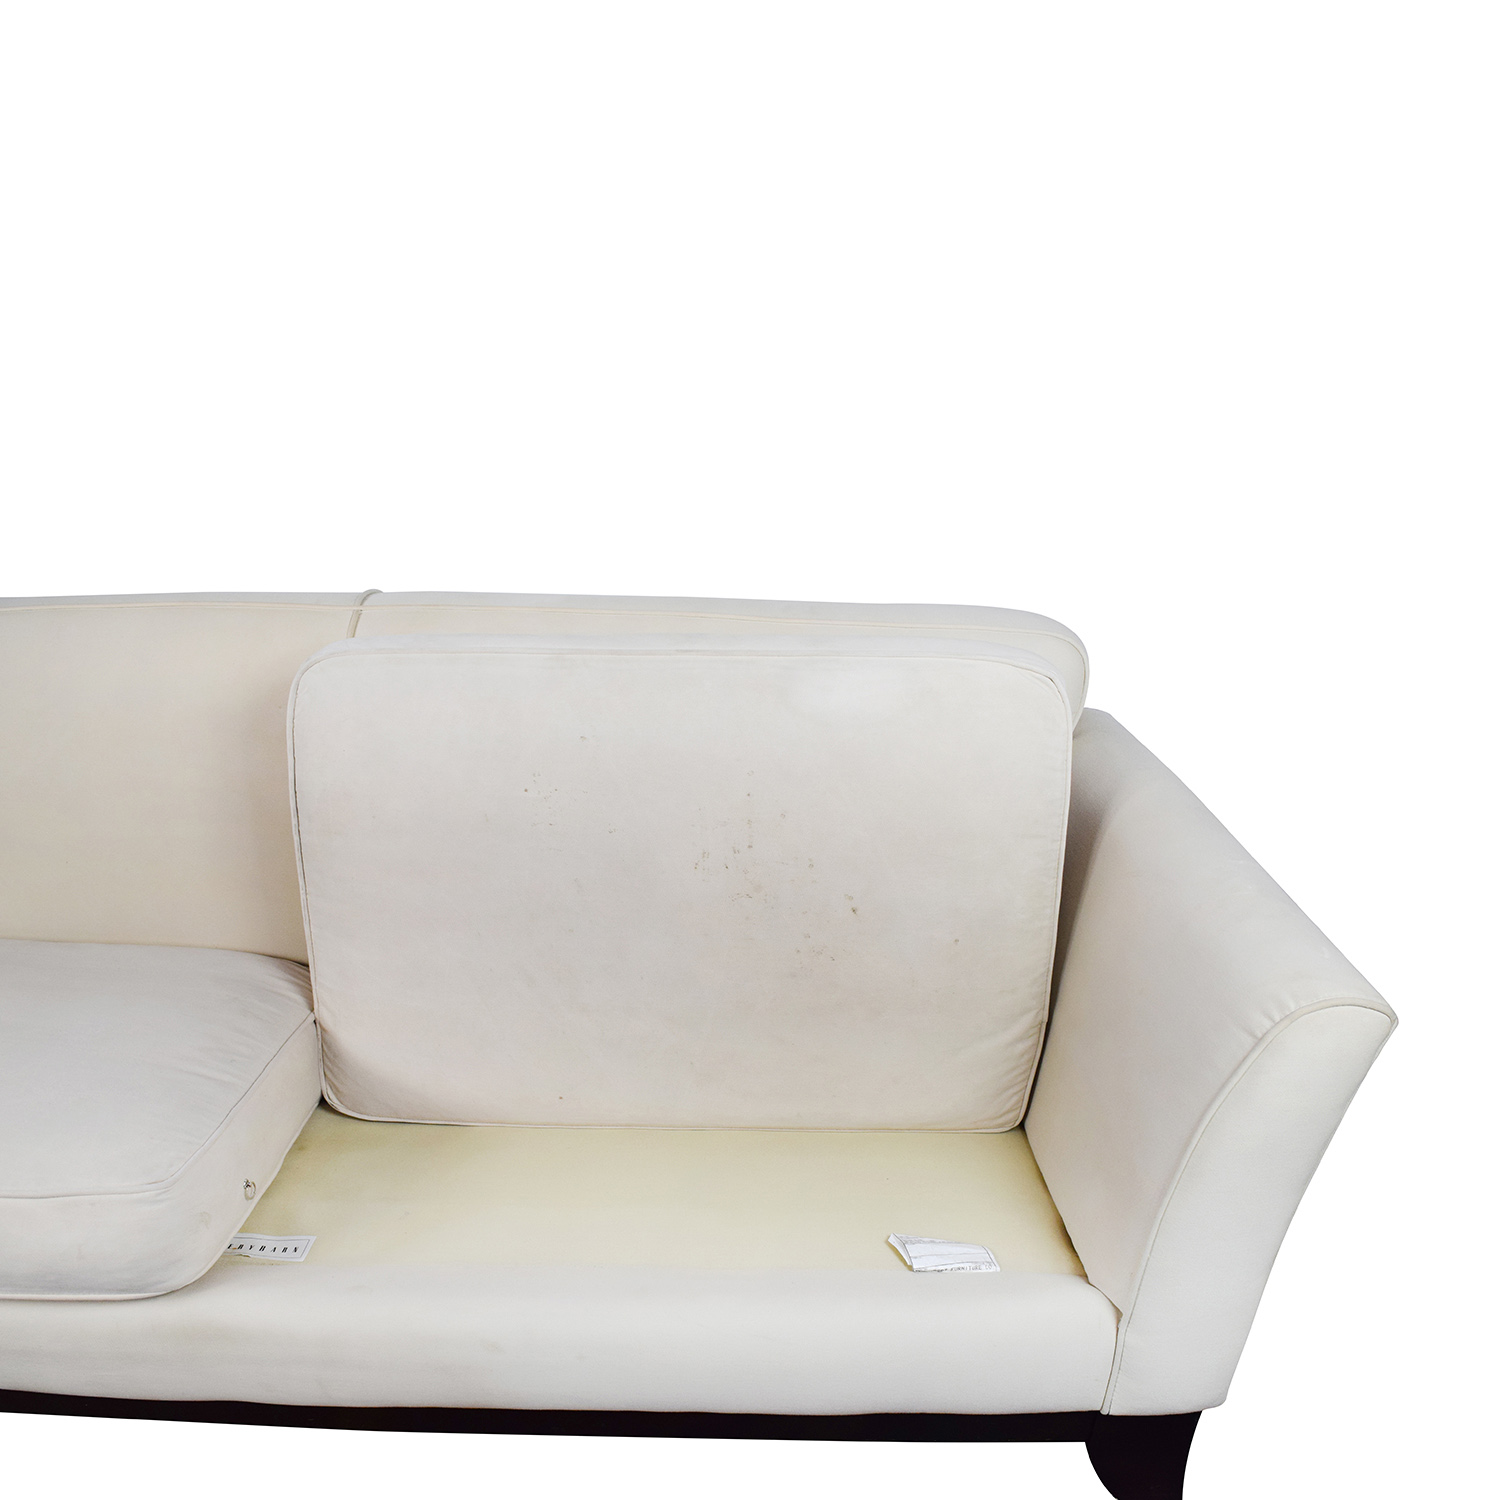 ... Used; Pottery Barn Pottery Barn Cream Couch Second Hand